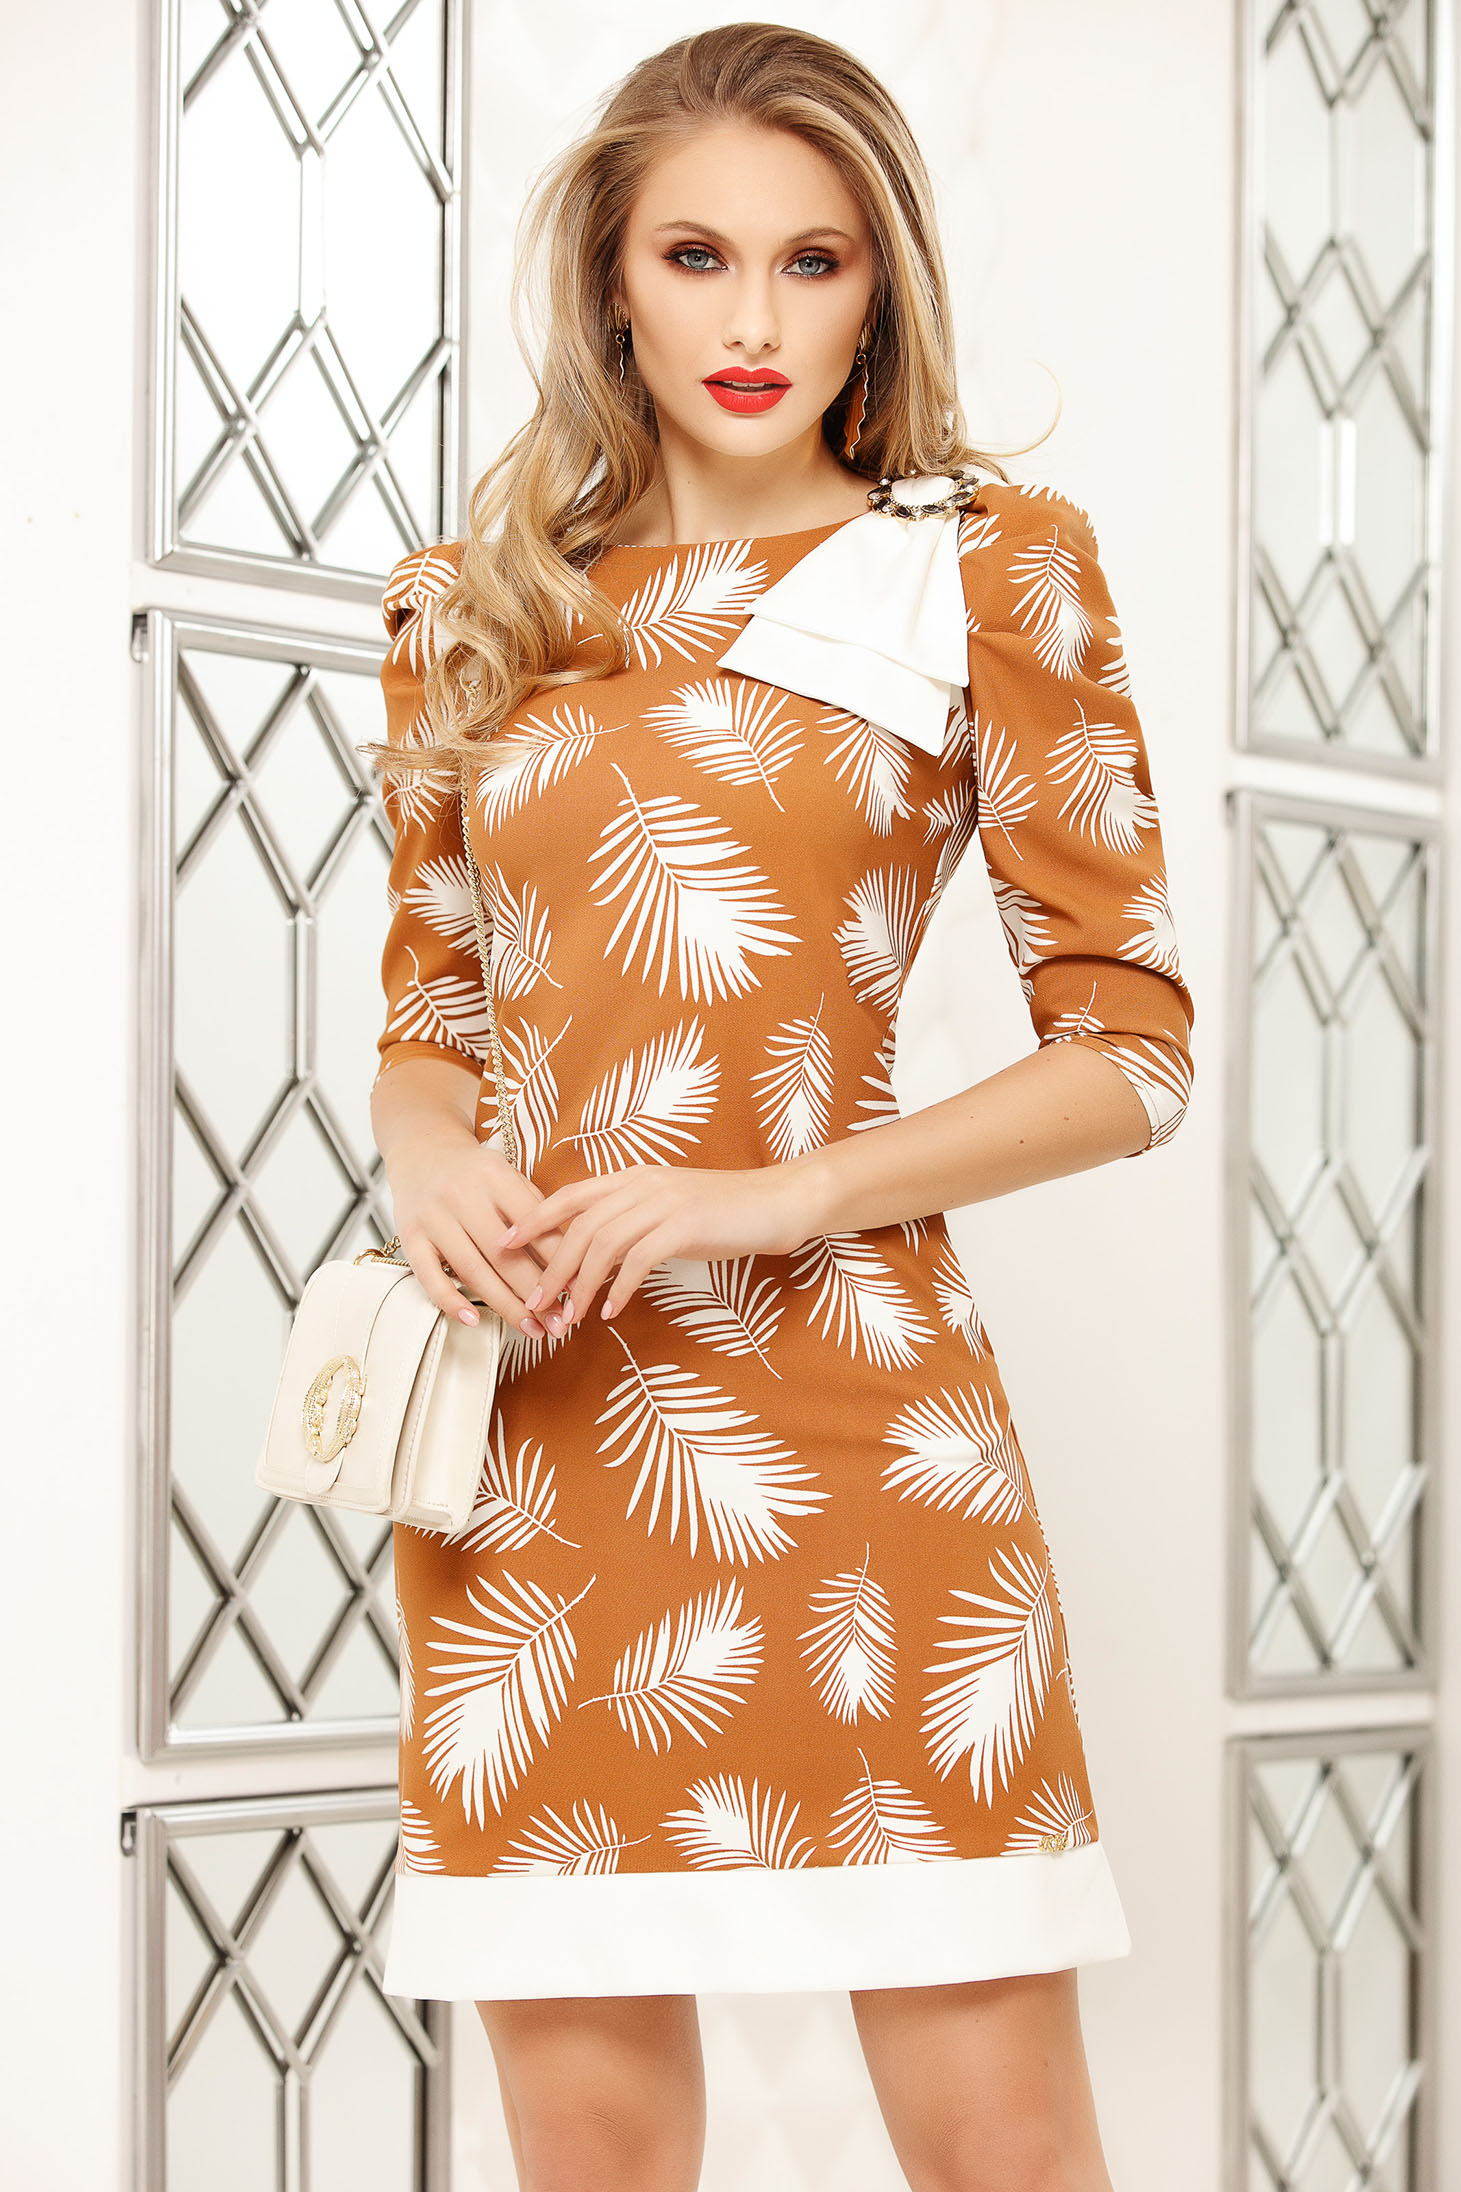 Dress brown office short cut a-line with floral prints accessorized with breastpin